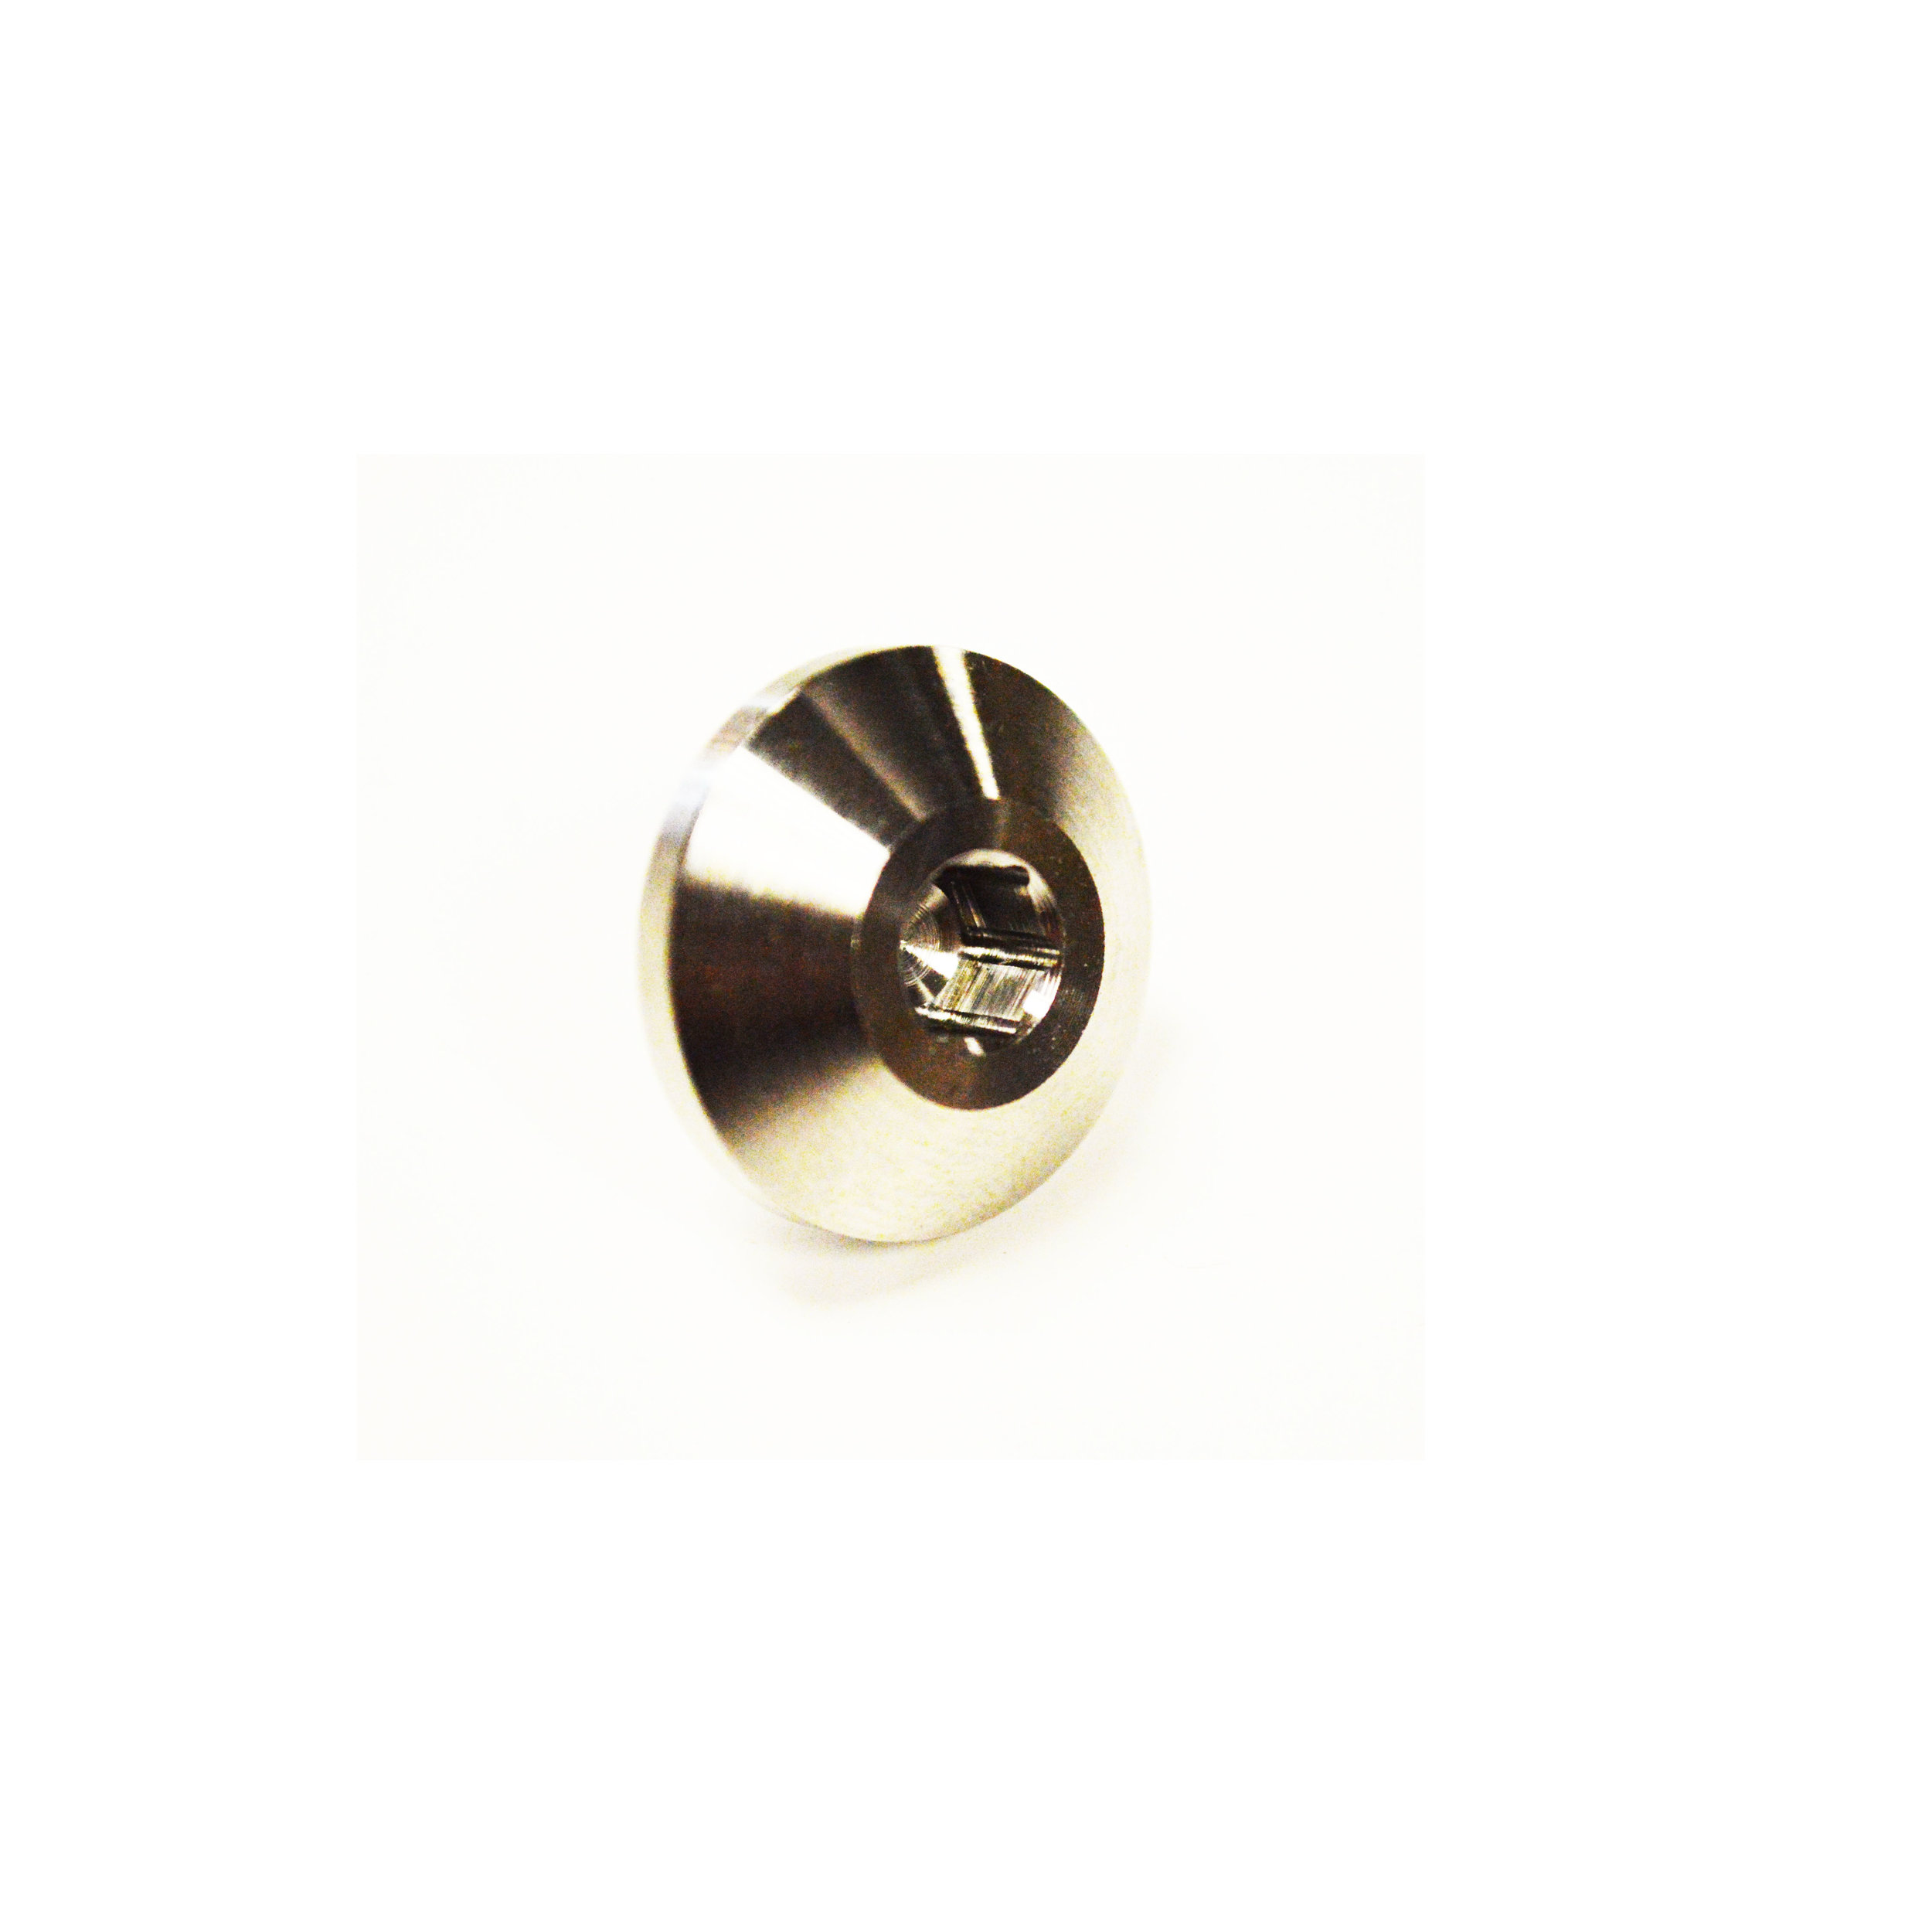 Battery Vent Plug-Hex Head        17-4 Stainless Steel            SMS-1421